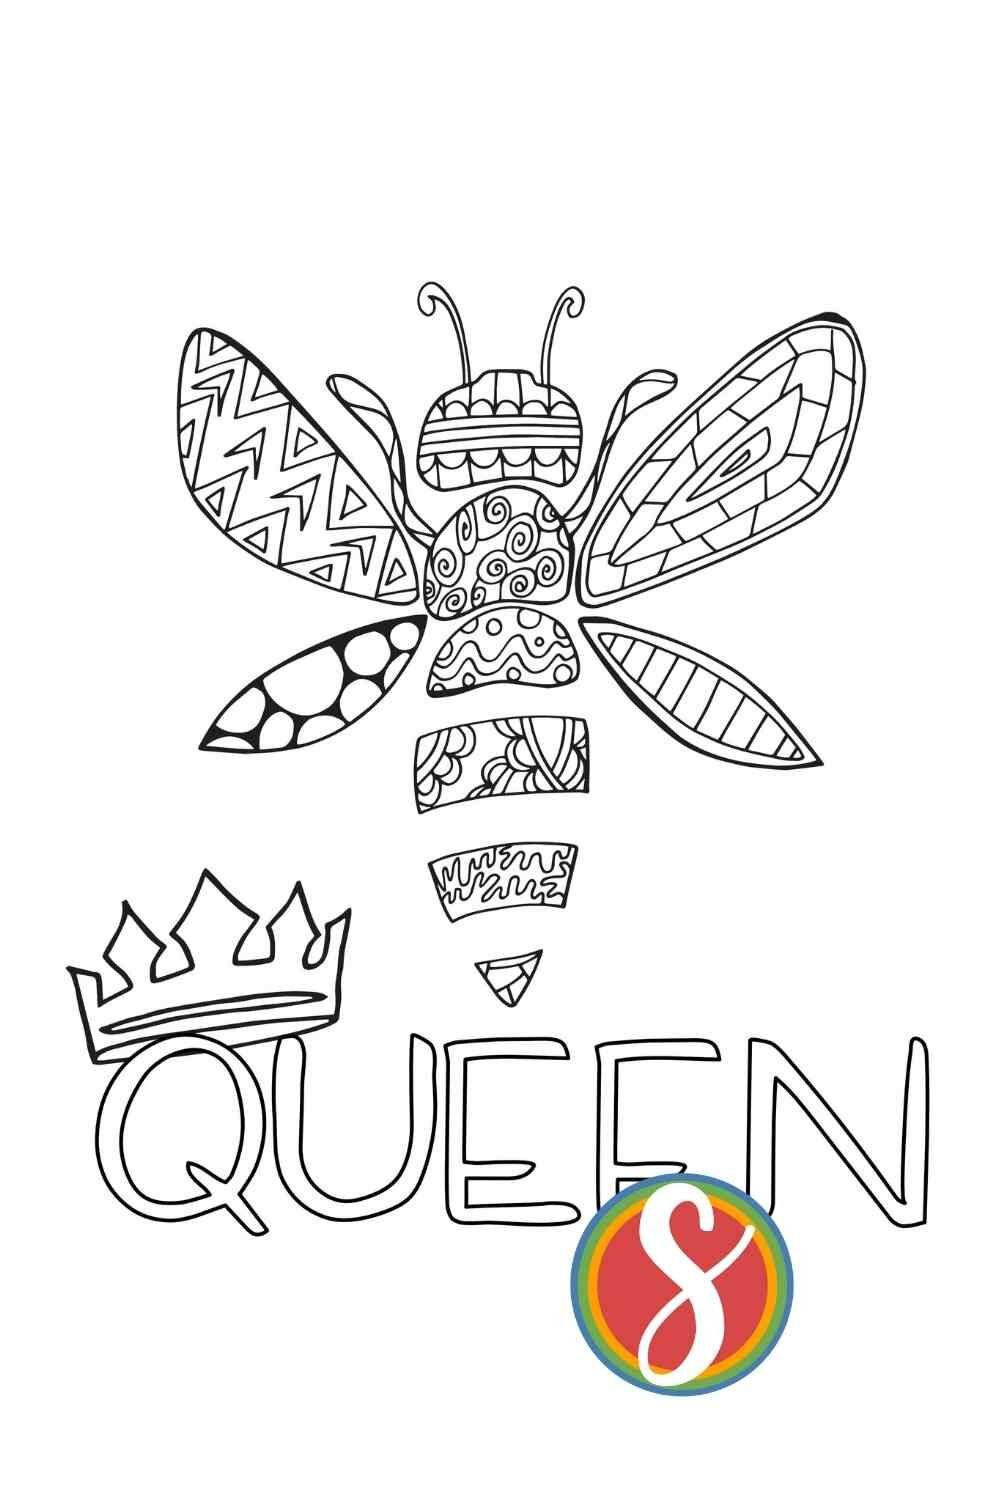 Free queen bee coloring page from Stevie Doodles - print and color this queen bee page today totally free + find a bunch of other free cute bee coloring sheets to enjoy